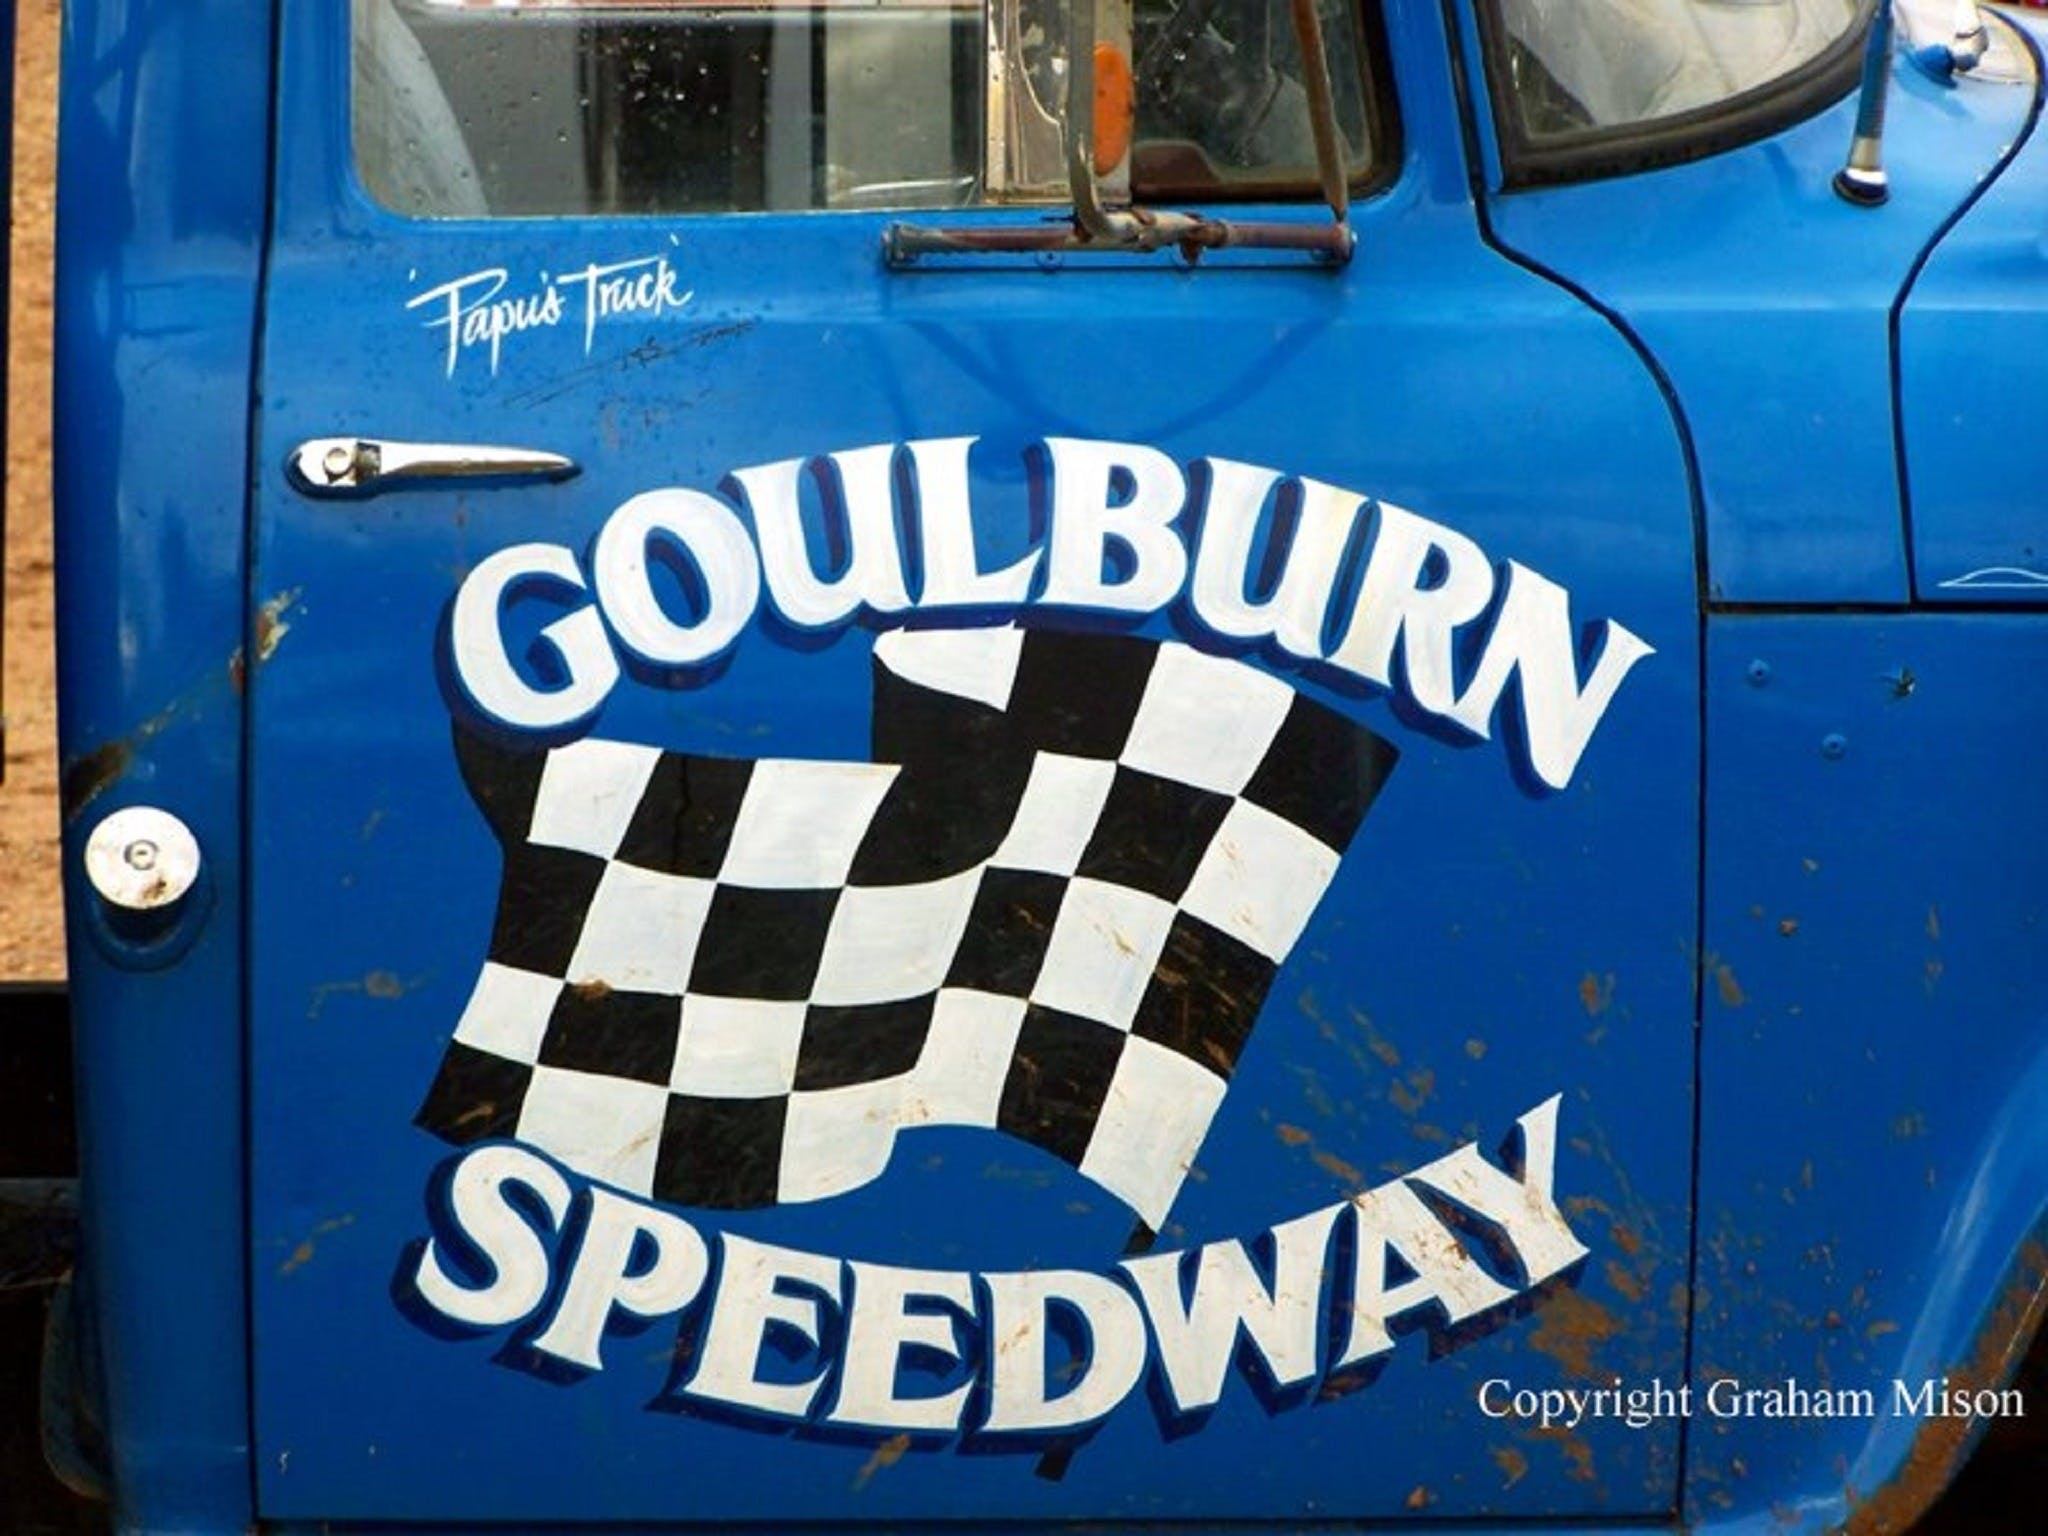 50 years of racing at Goulburn Speedway - Pubs Sydney